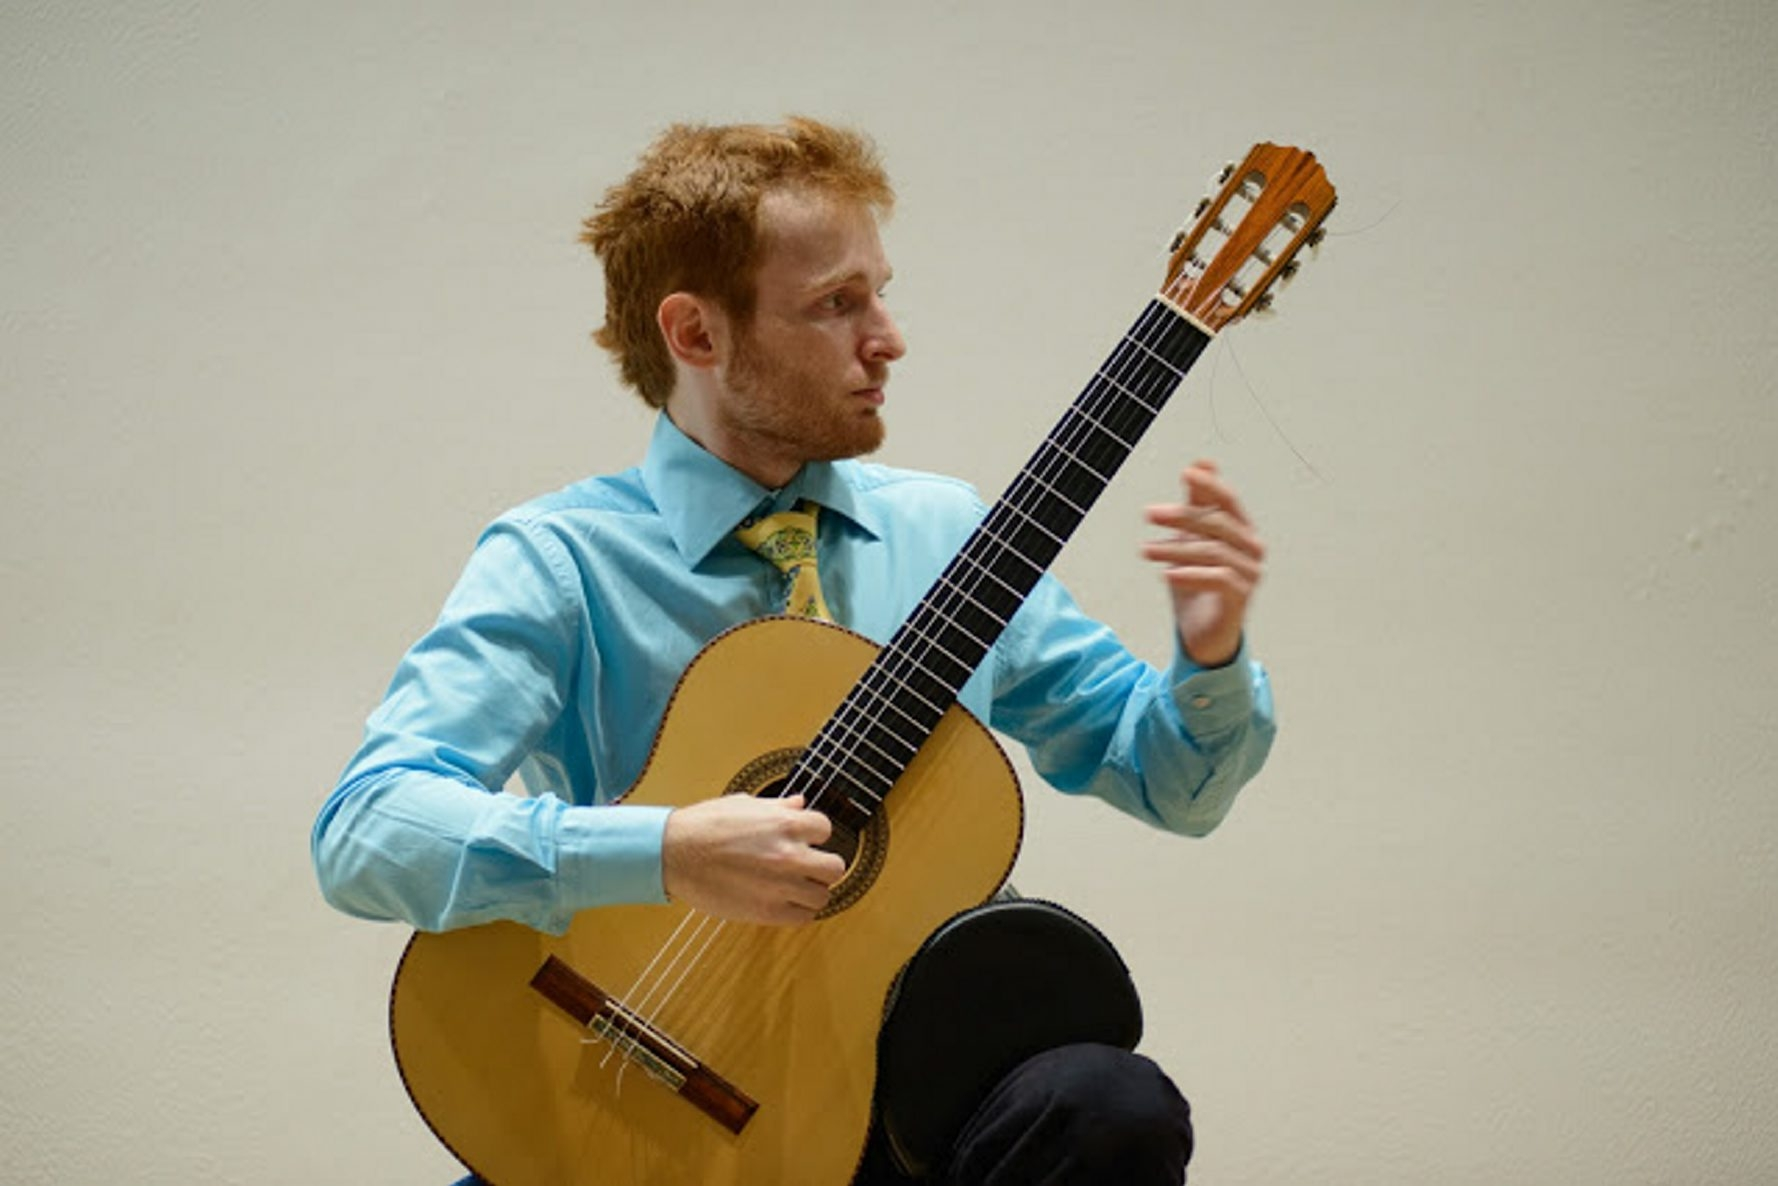 Marko Topchii is one of the guitar competition finalists.